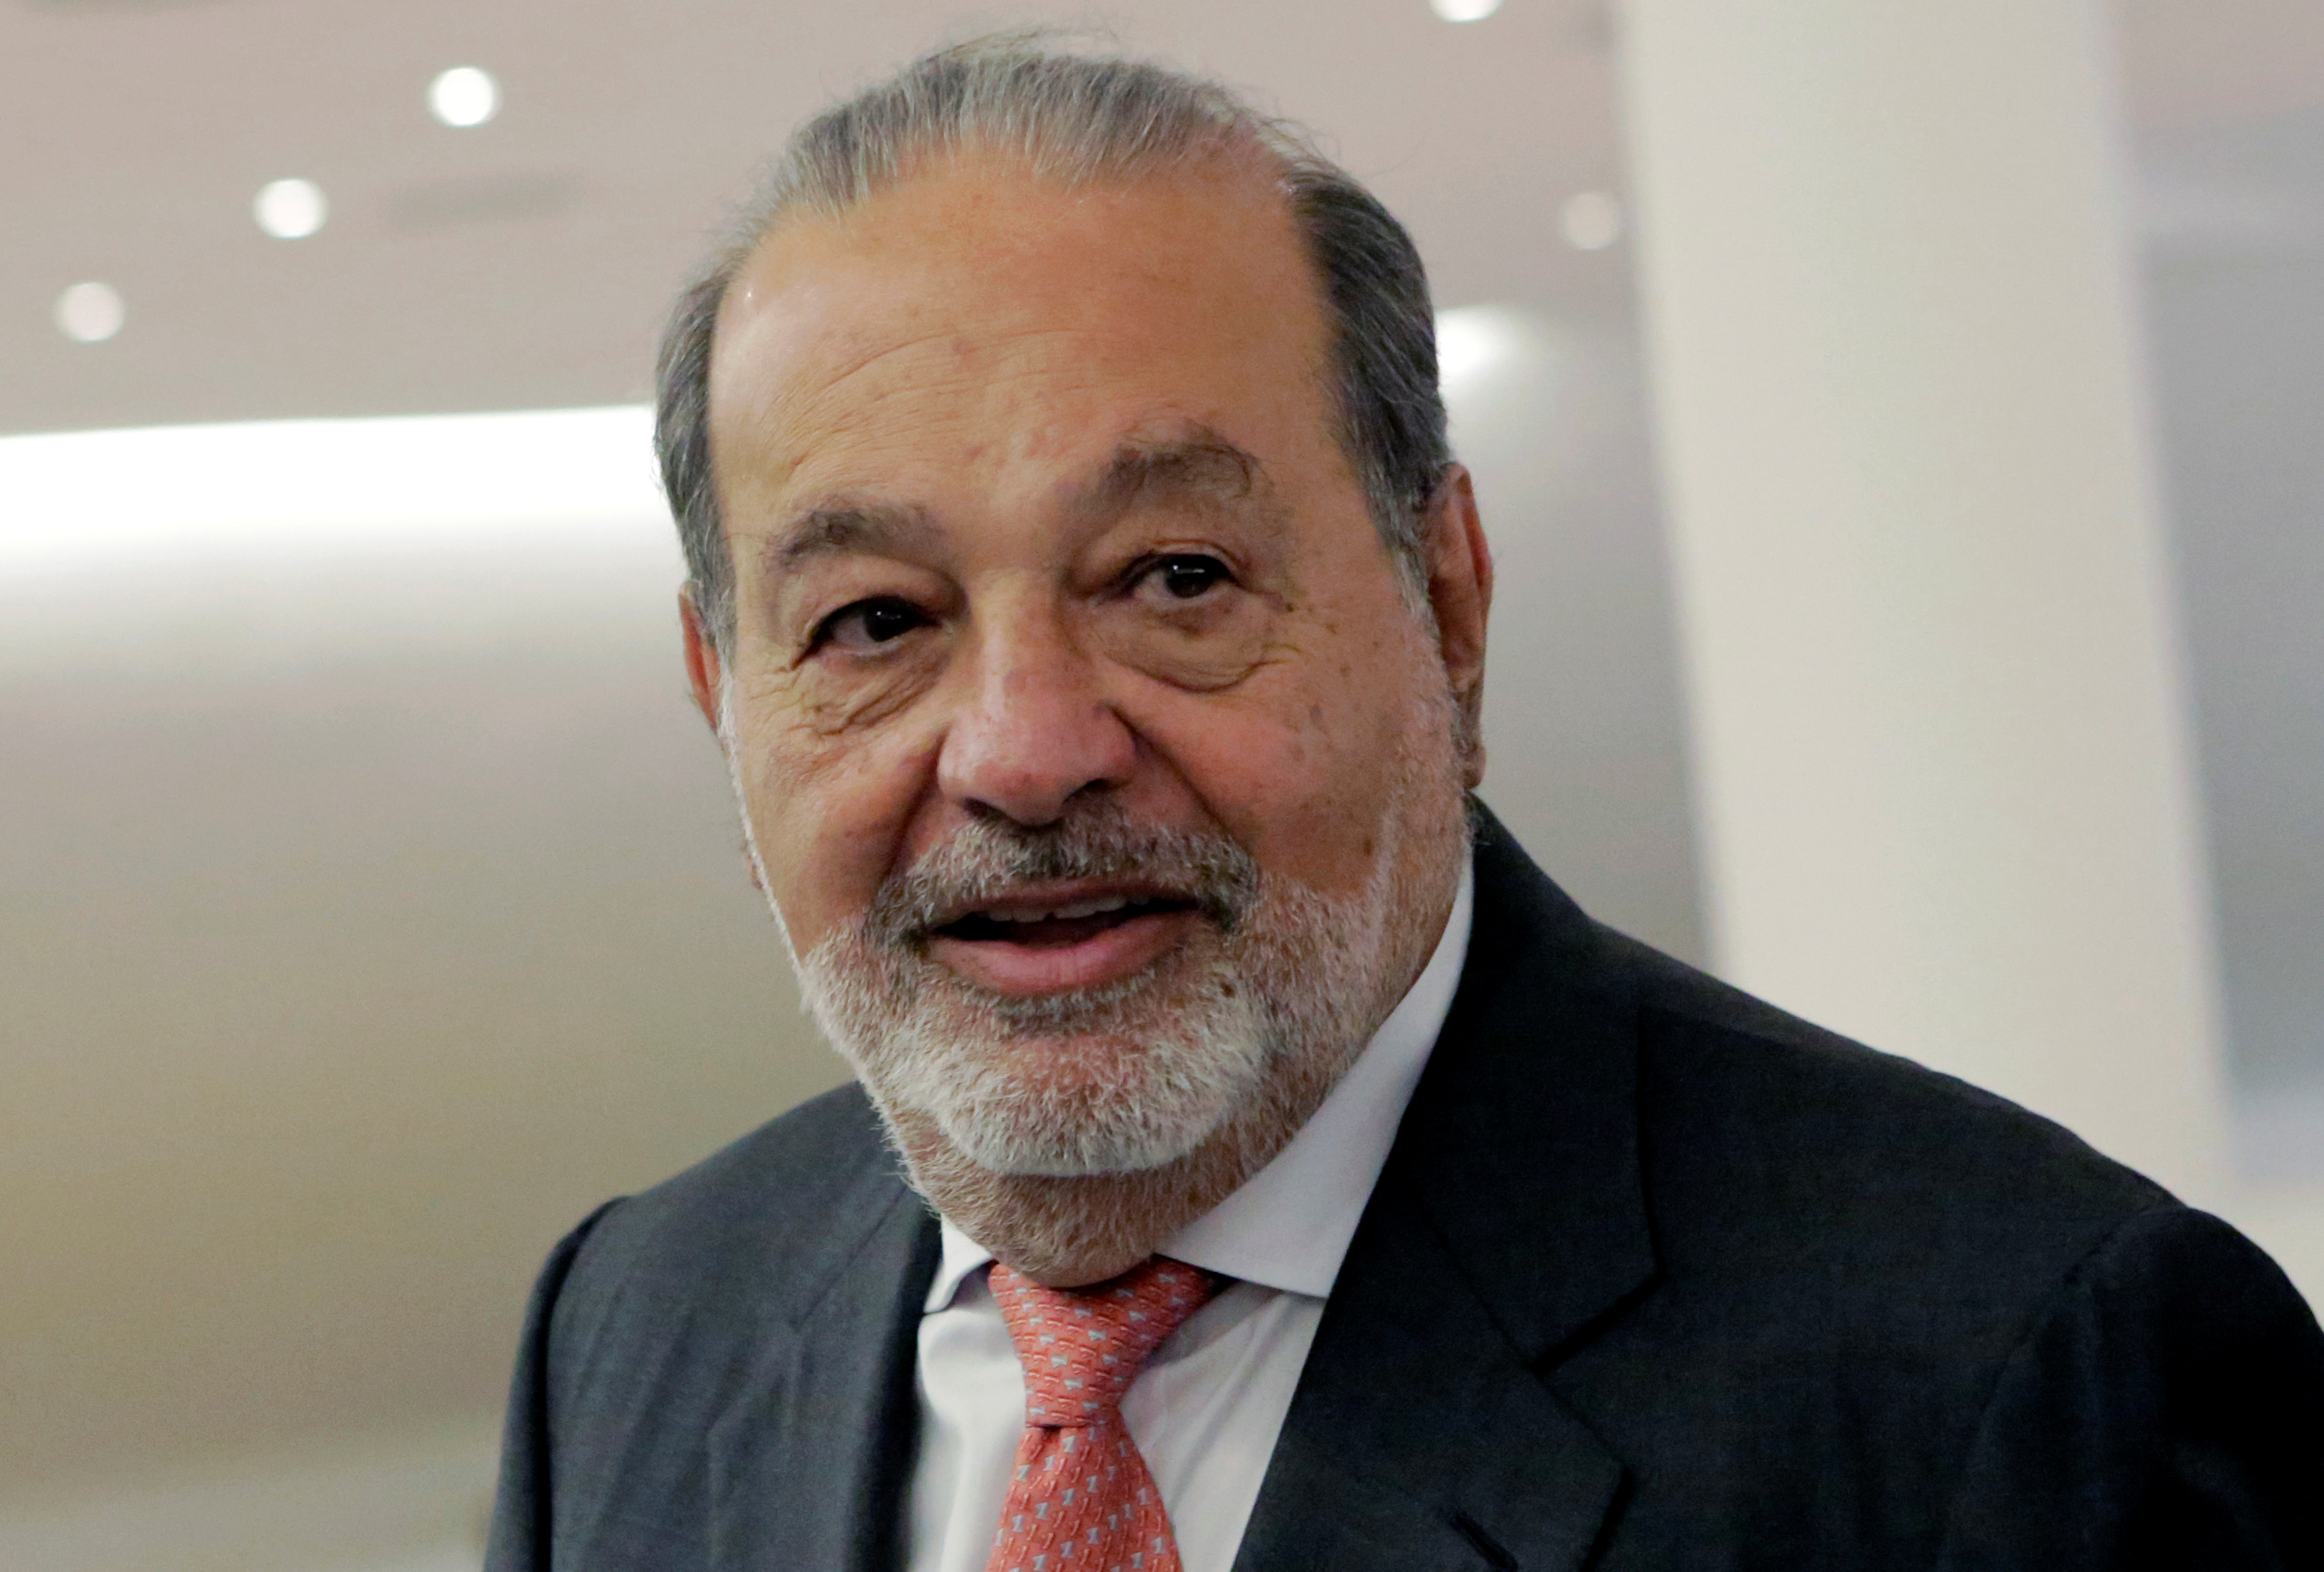 Mexican tycoon Carlos Slim walks after he launched a free online platform for education with free access to mobile WiFi connections to the Internet on his Infinitum service during a news conference at Soumaya museum in Mexico City